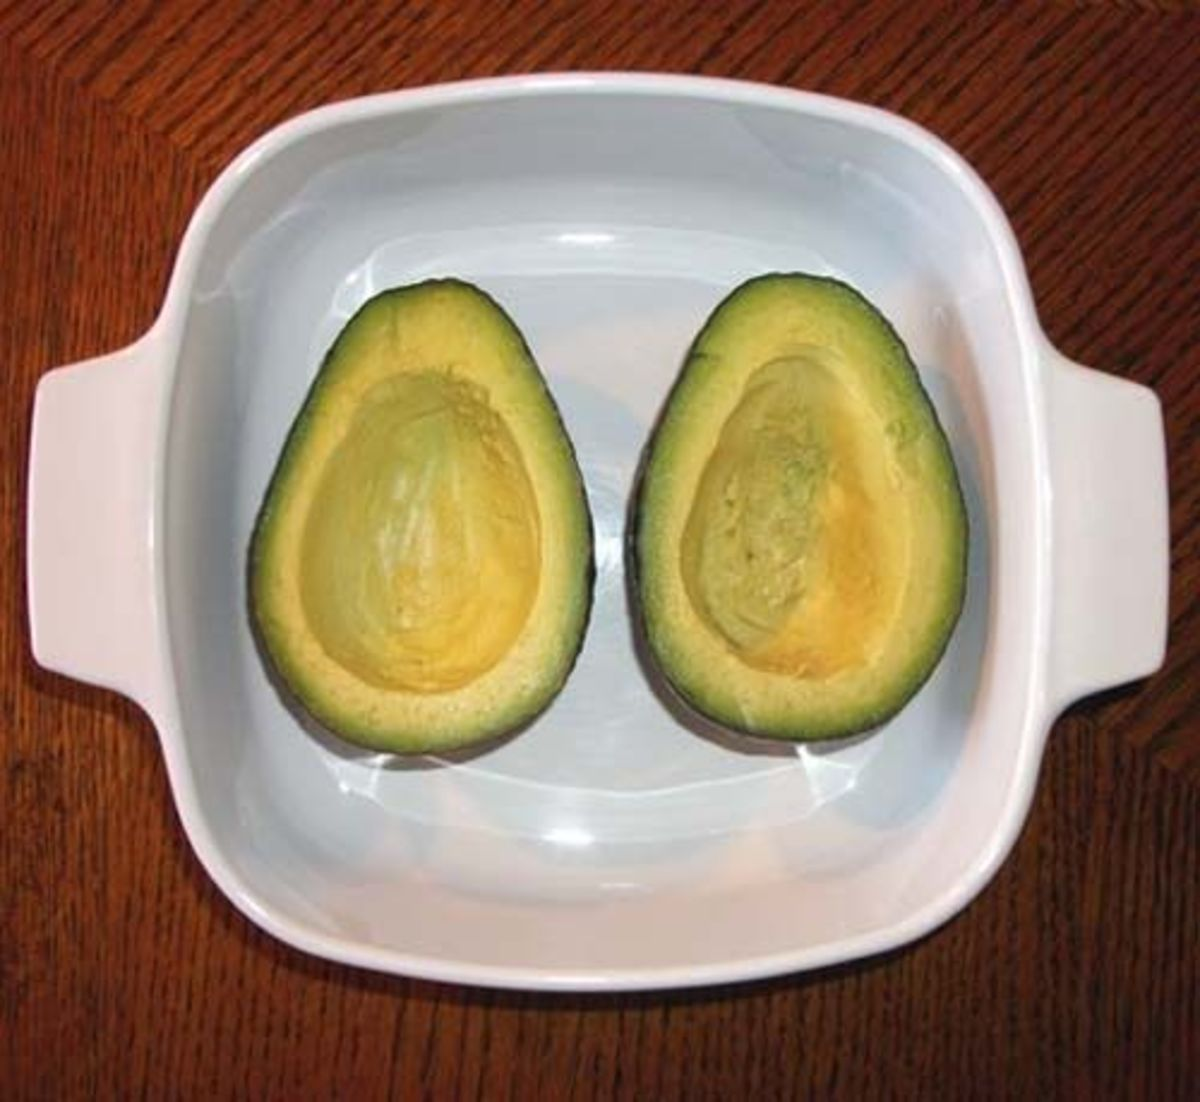 Two avocado halves in a baking dish